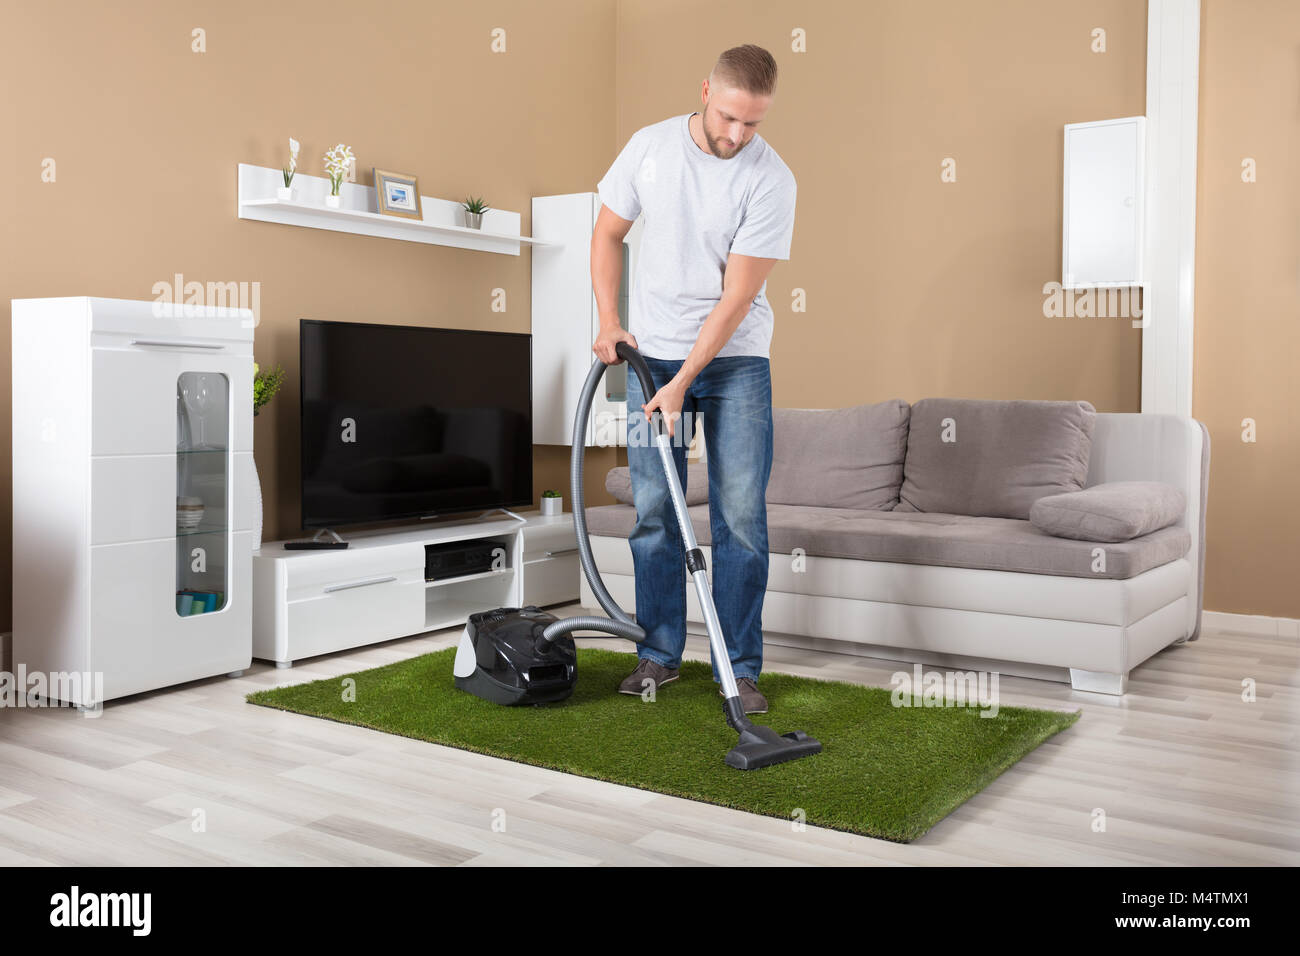 Teppich Reinigen Baby People Vacuuming Young Stockfotos And People Vacuuming Young